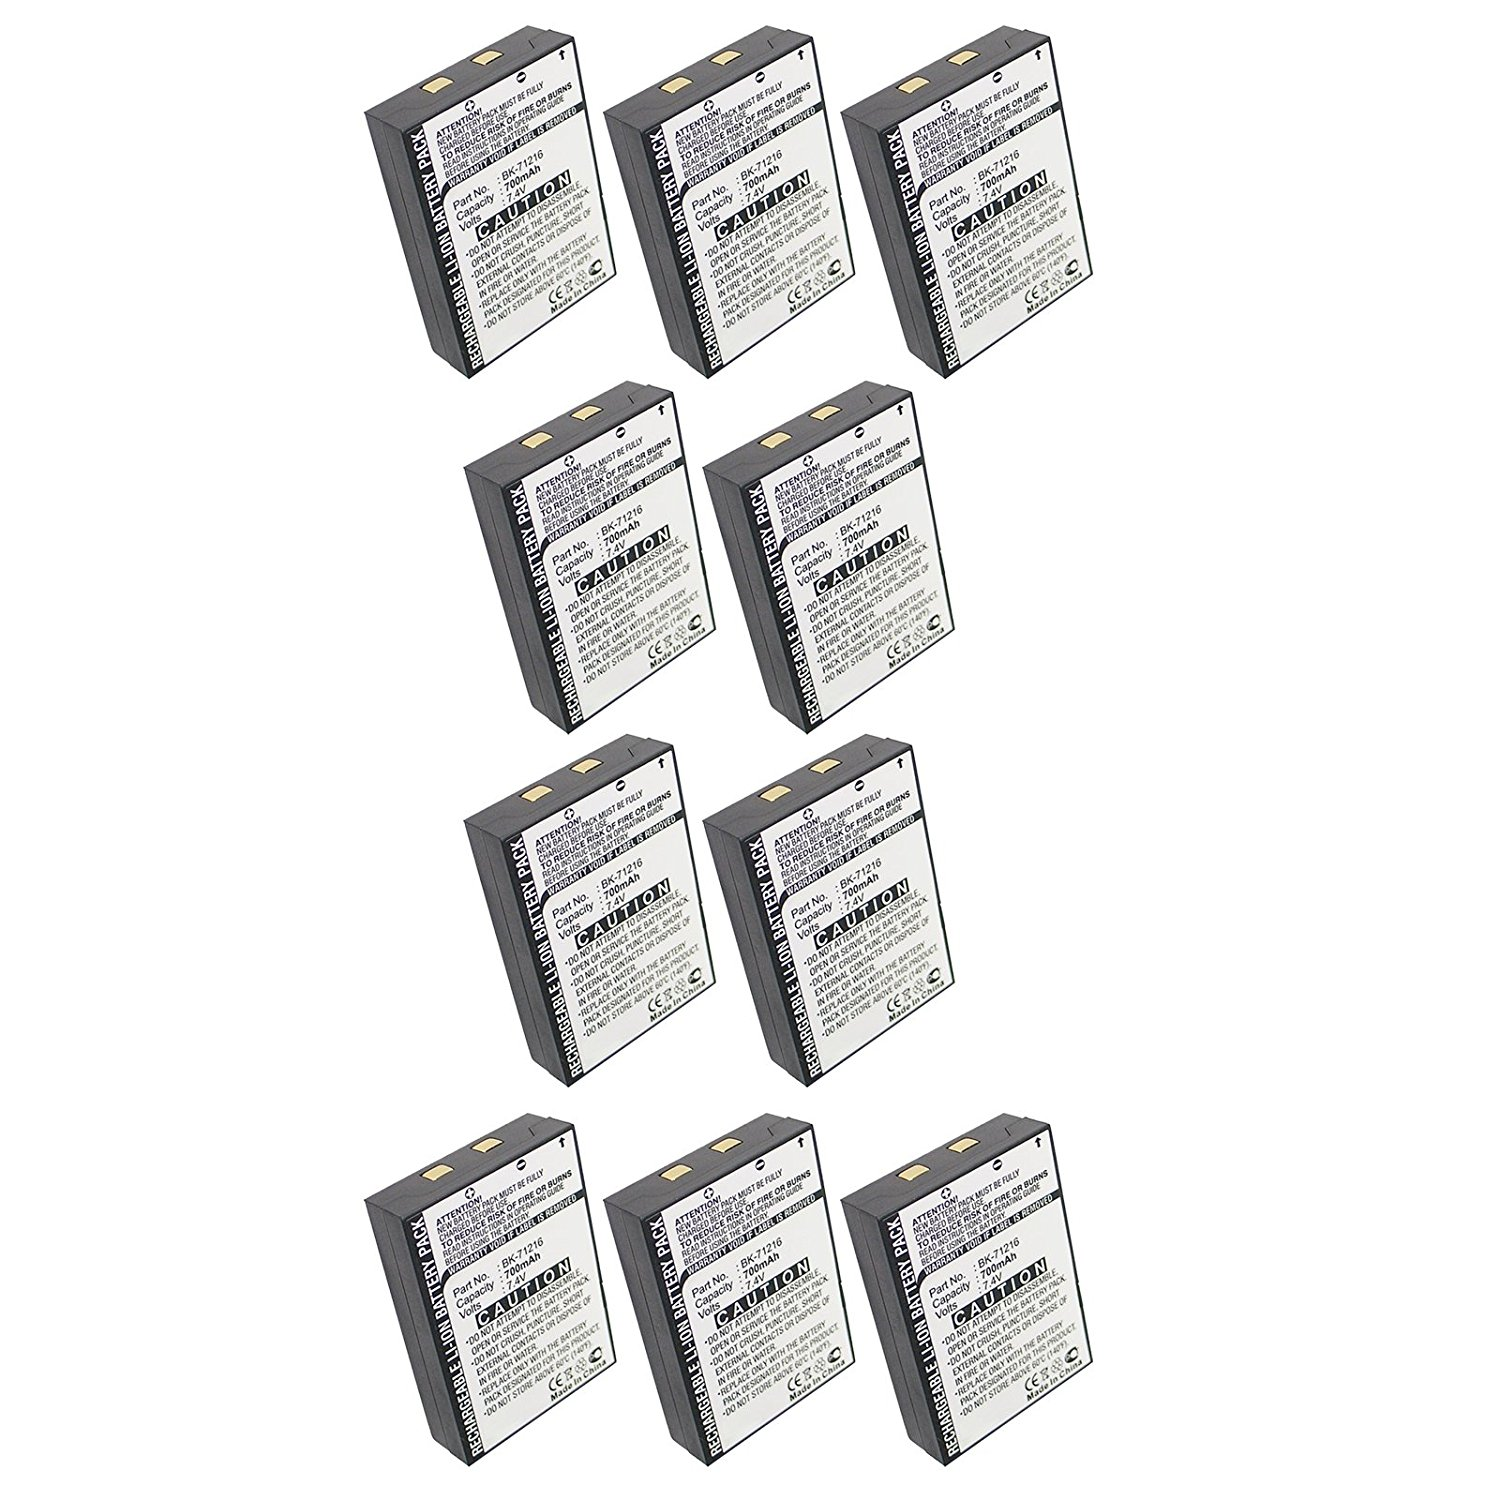 10pcs Exell FRS Two-Way Radio Battery Fits Cobra CXR 700, CXR 750, CXR 800, CXR 850, LI3900, LI3950, LI4900, LI5600, LI6000, LI6050, LI6500, LI6700, microTALK CXR700 25-Mile Radio, microTALK CXR800 27-Mile Radio , microTALK LI3900-2 DX 14-Mile Radio, microTALK LI4900-2 WX 18-Mile Radio , microTALK